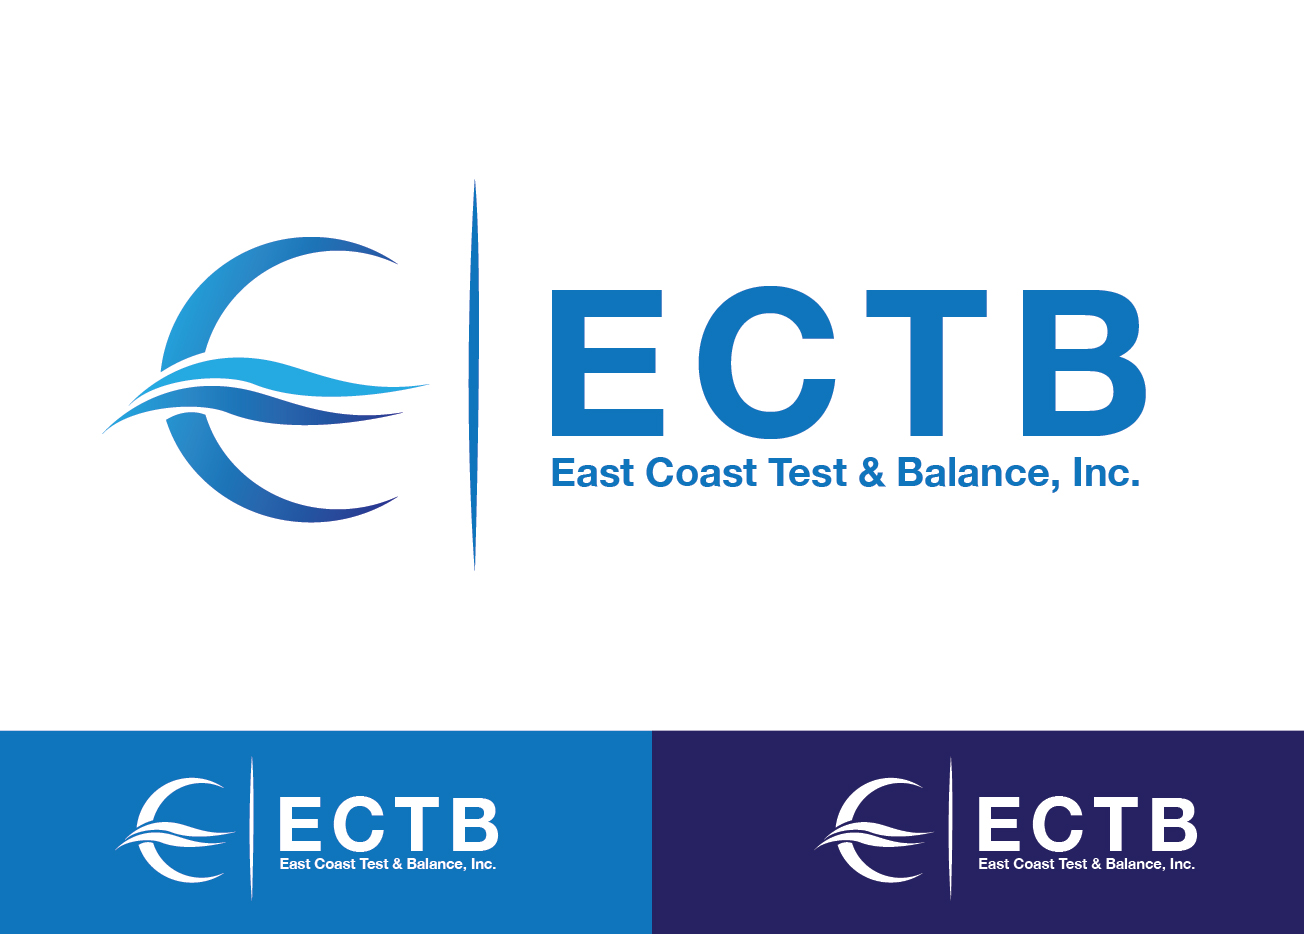 Logo Design by Dek Lestari - Entry No. 75 in the Logo Design Contest Logo Design for East Coast Test & Balance, Inc. (ECTB).